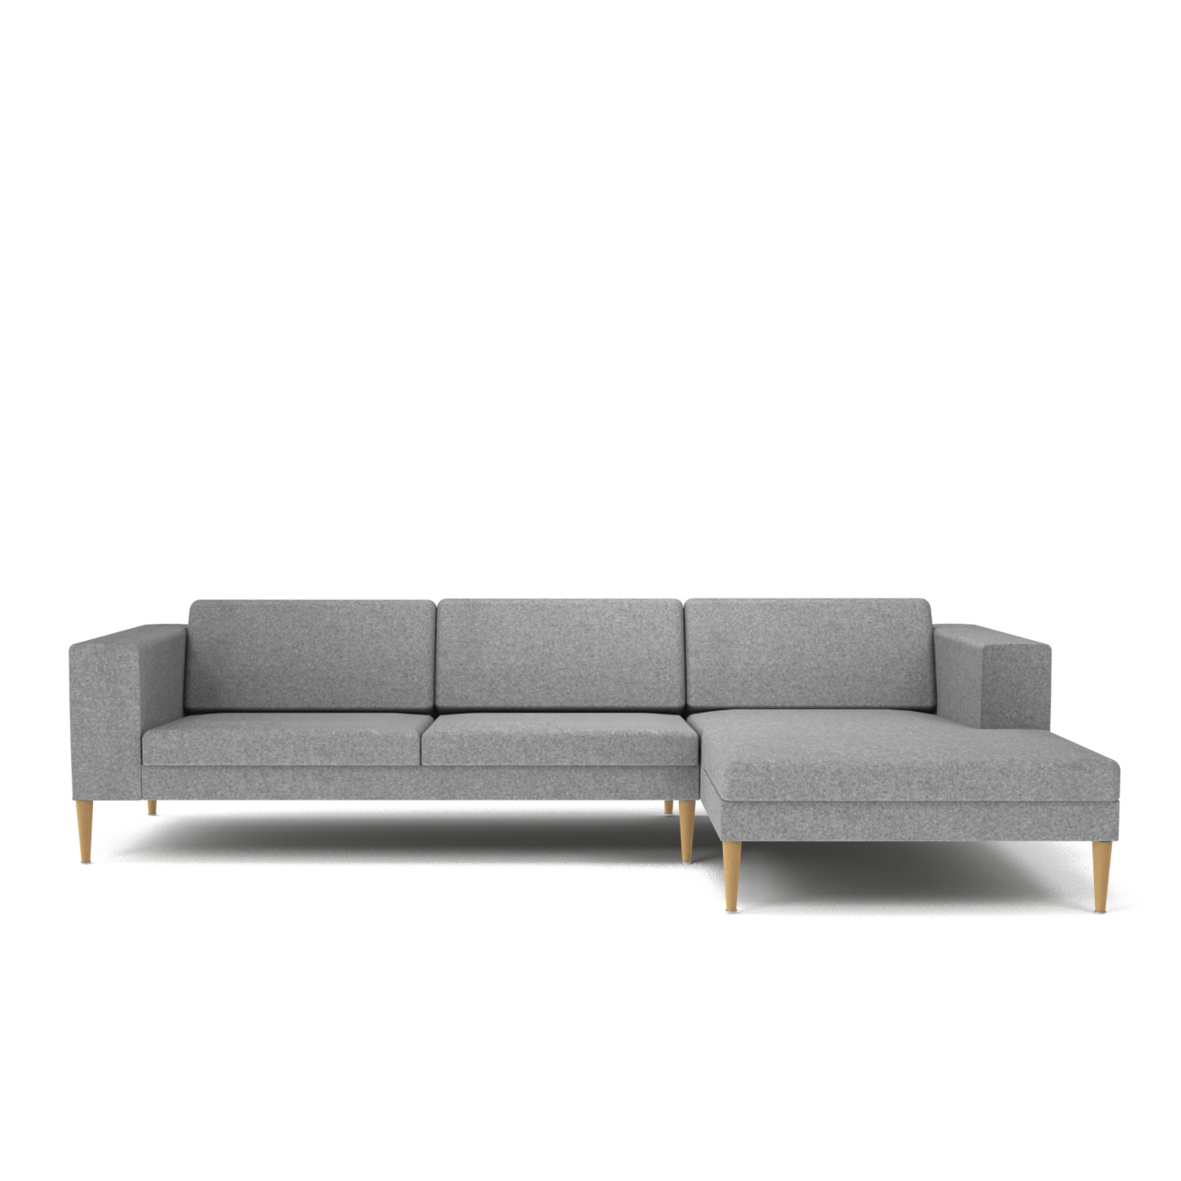 frend sofa chaise lounge